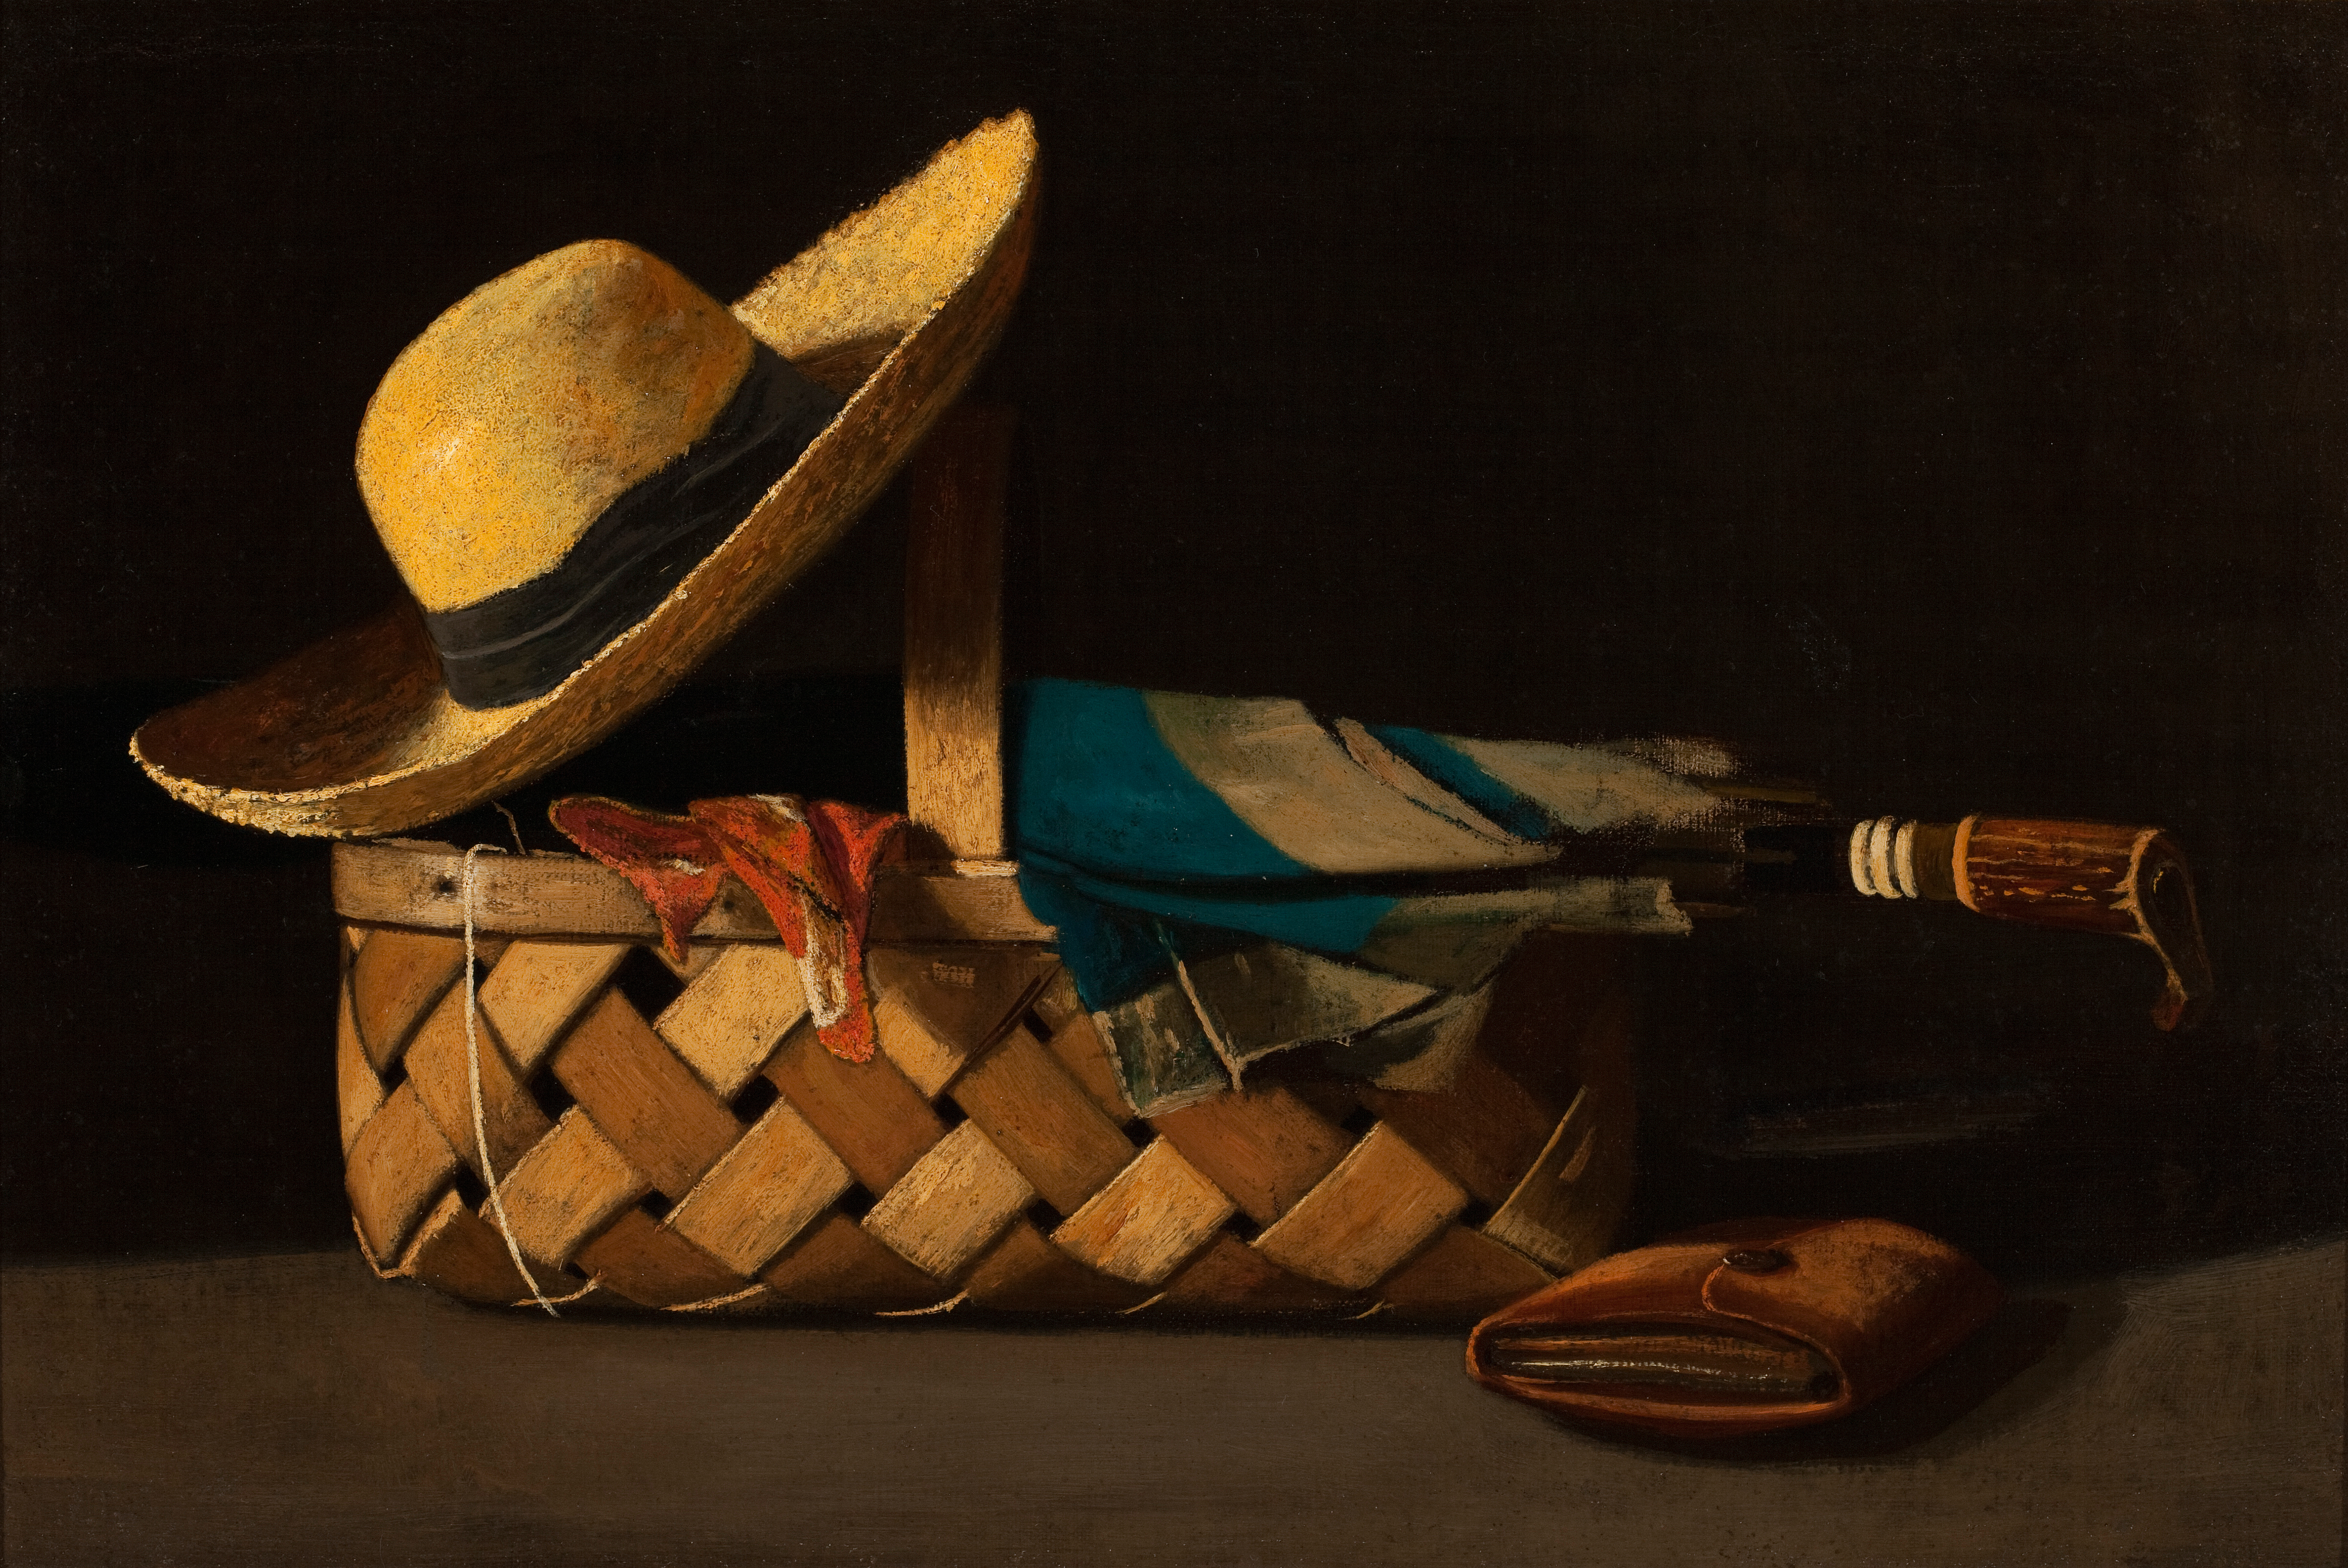 John Frederick Peto (American, 1854-1907) Market Basket, Hat and Umbrella, after 1890 Oil on canvas; 12 x 18 in. Milwaukee Art Museum, Layton Art Collection, Purchase, L1964.5 Photo by John R. Glembin